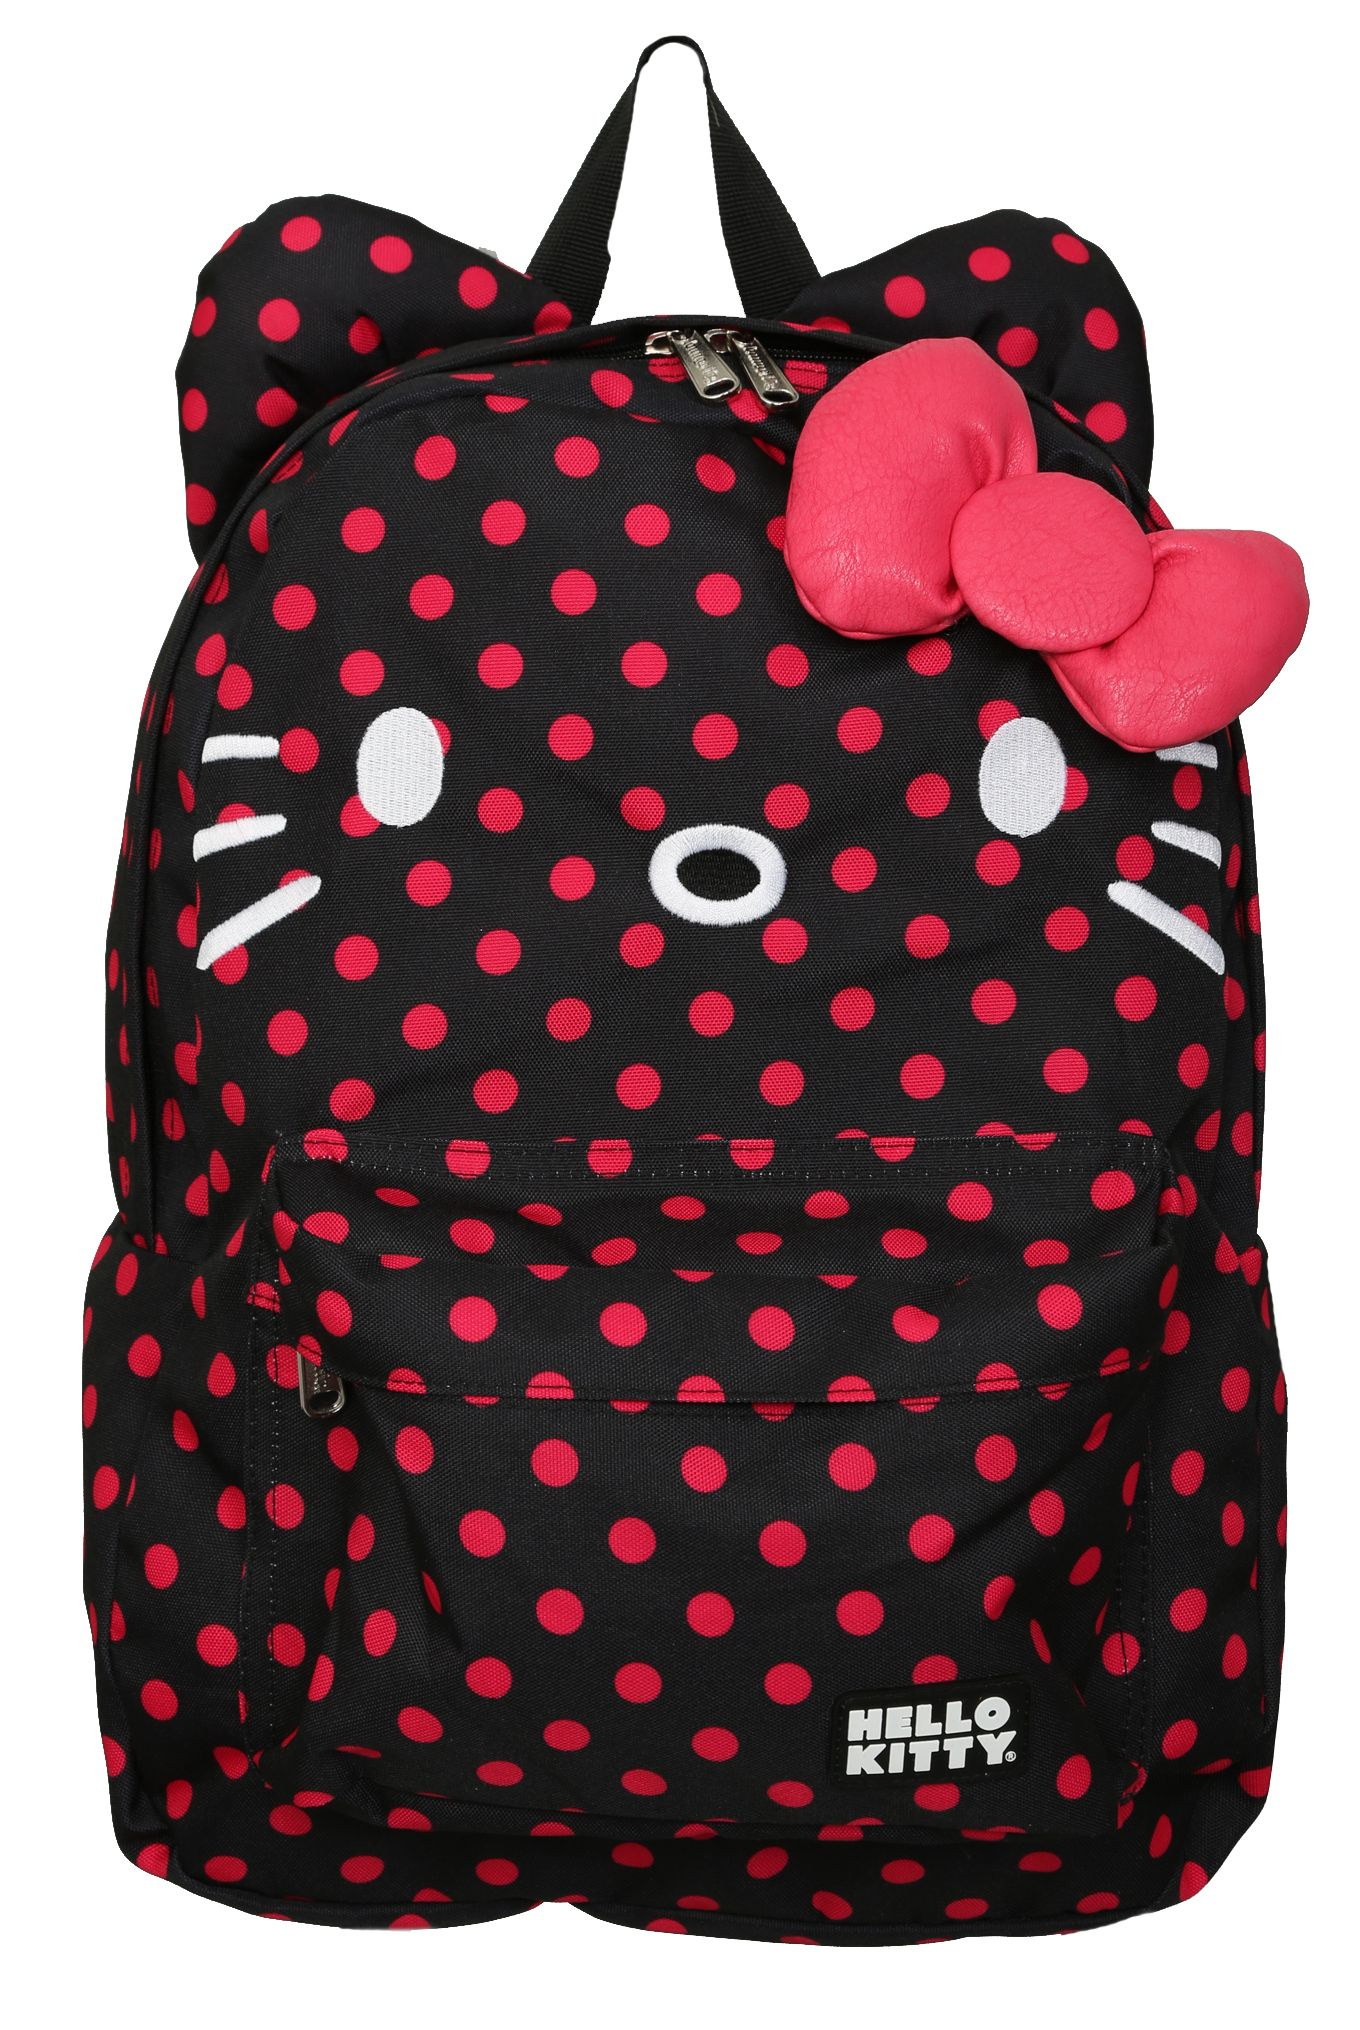 Loungefly Hello Kitty Pink Amp Black Polka Dot Backpack